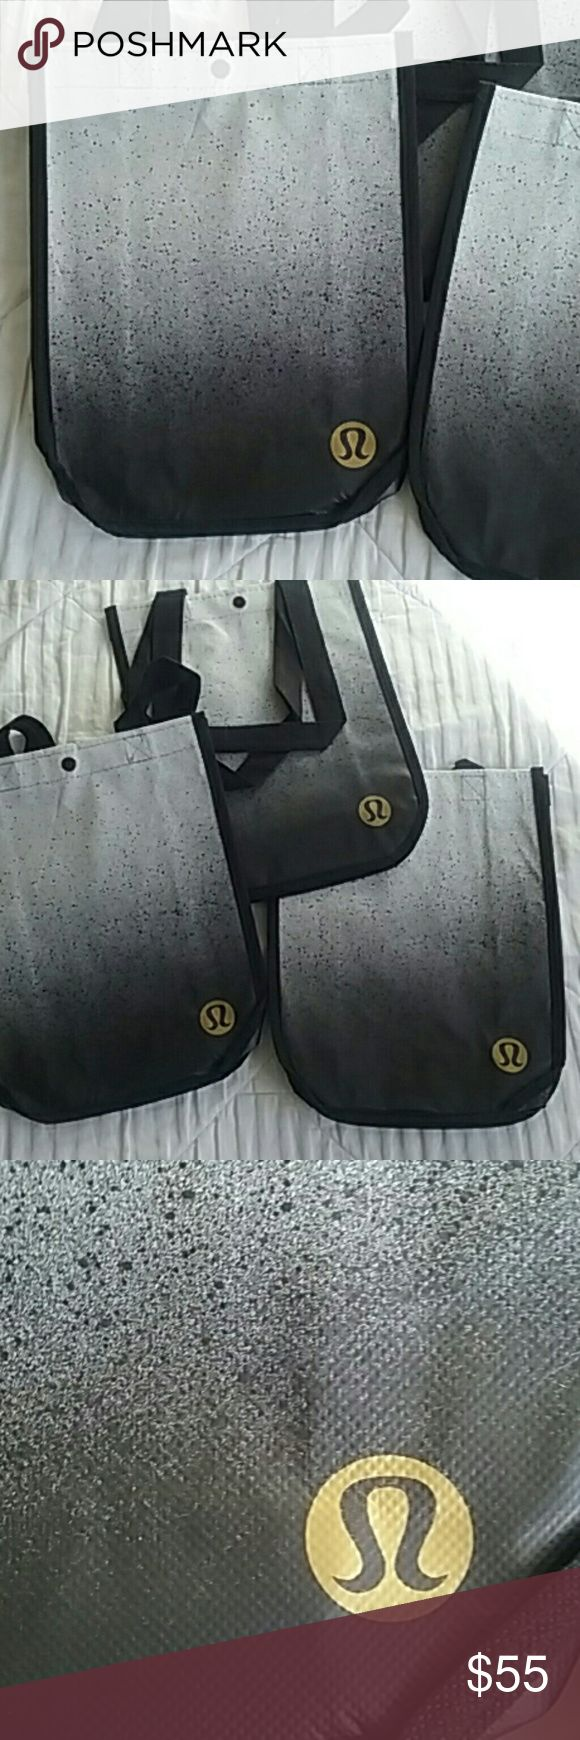 Lululemon gift bags..new.set of 3 REALLY PRETTY bags Great for a lulu gift or for your listings MEASURES APPROX 12x 9 x 4 Price is firm unless bundled! lululemon  Bags